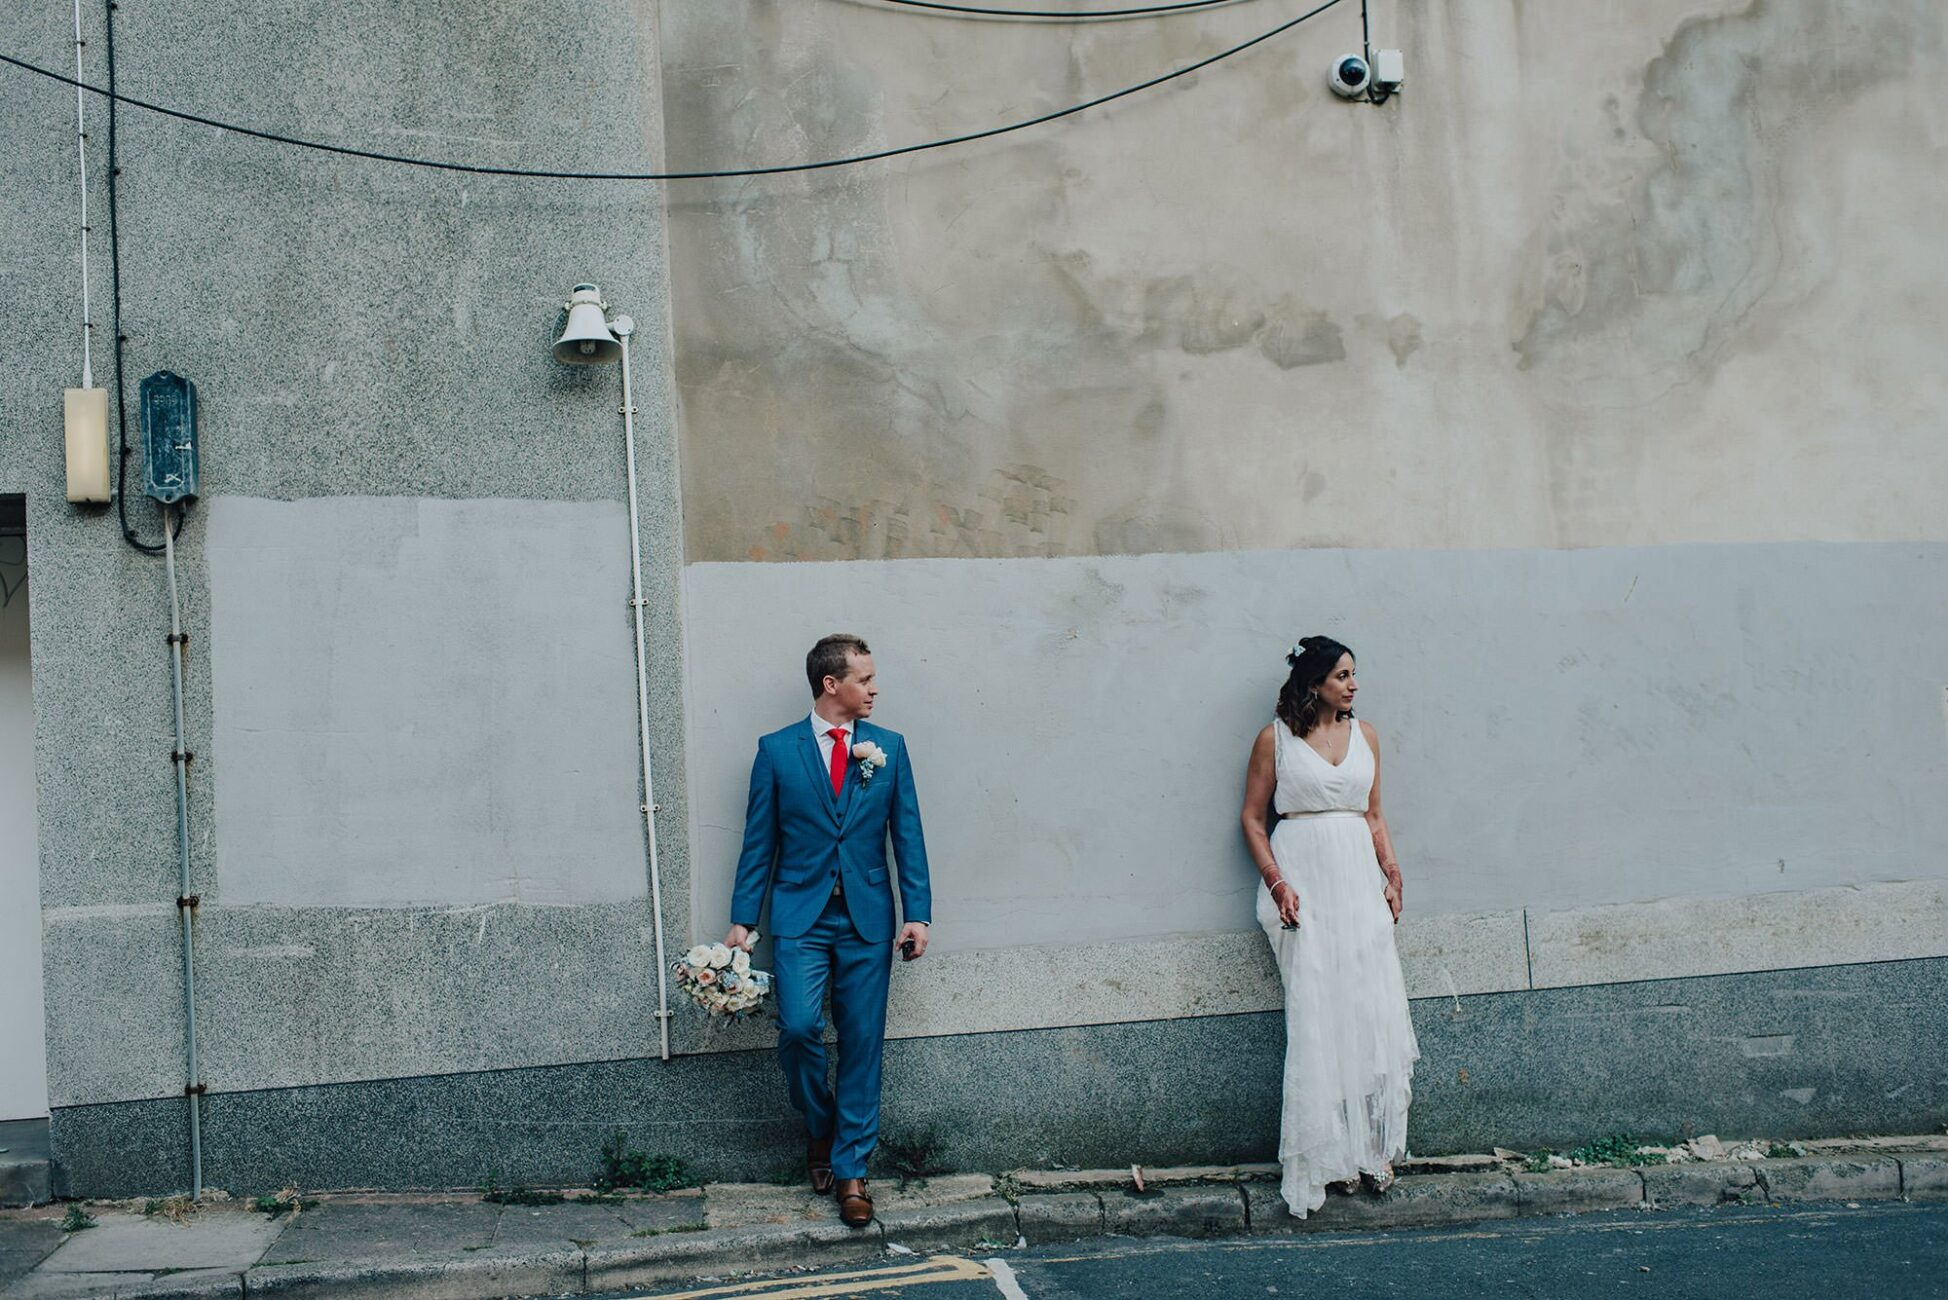 groom holding flowers and bride looking away in an urban setting in brighton